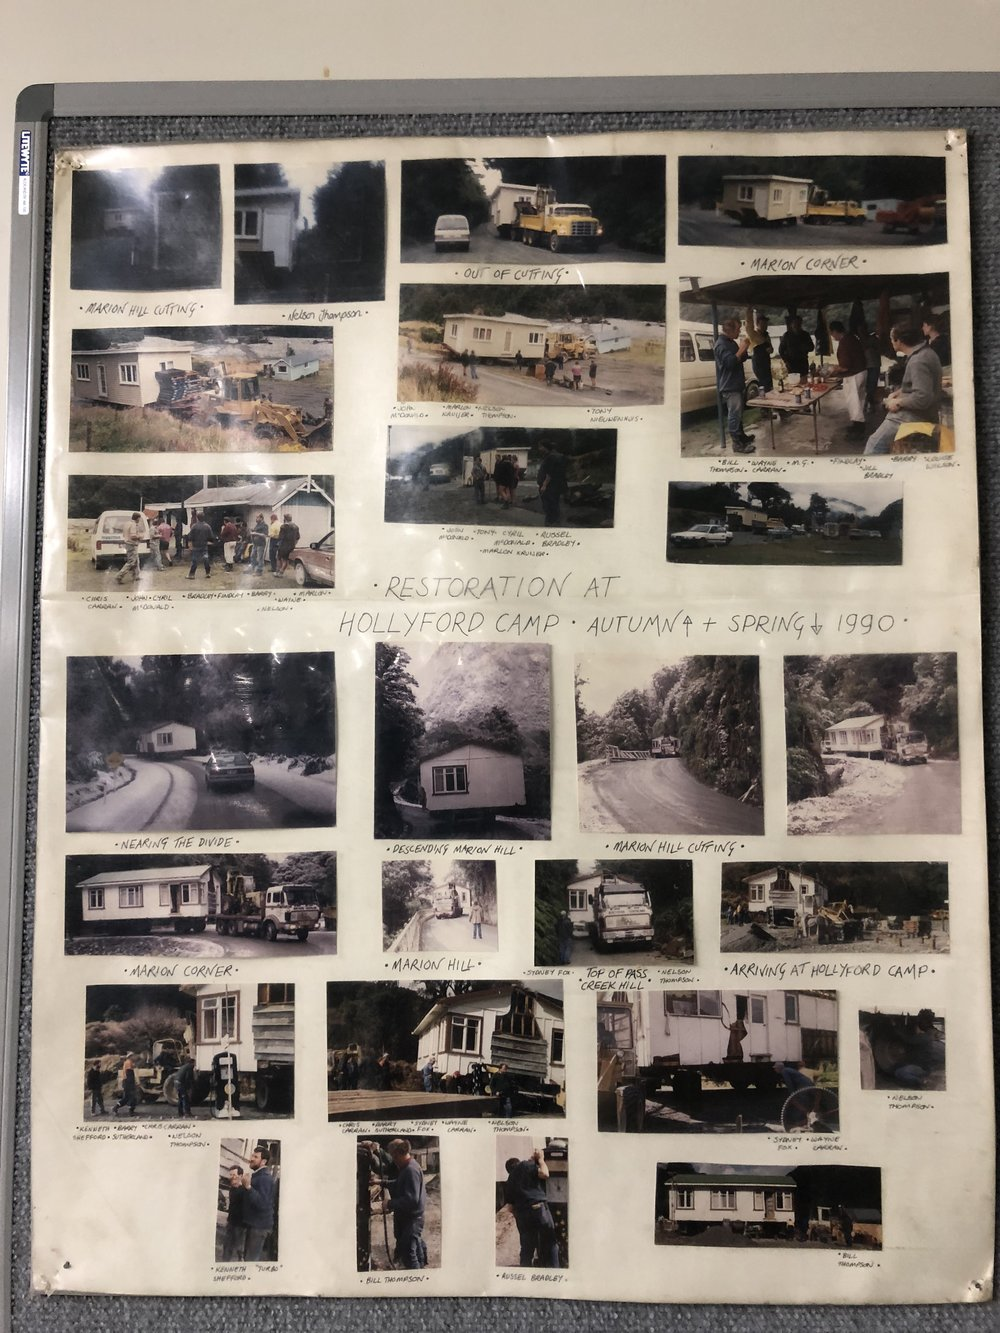 The photos in the communal area at Gunn's Camp showcase the history of the place.